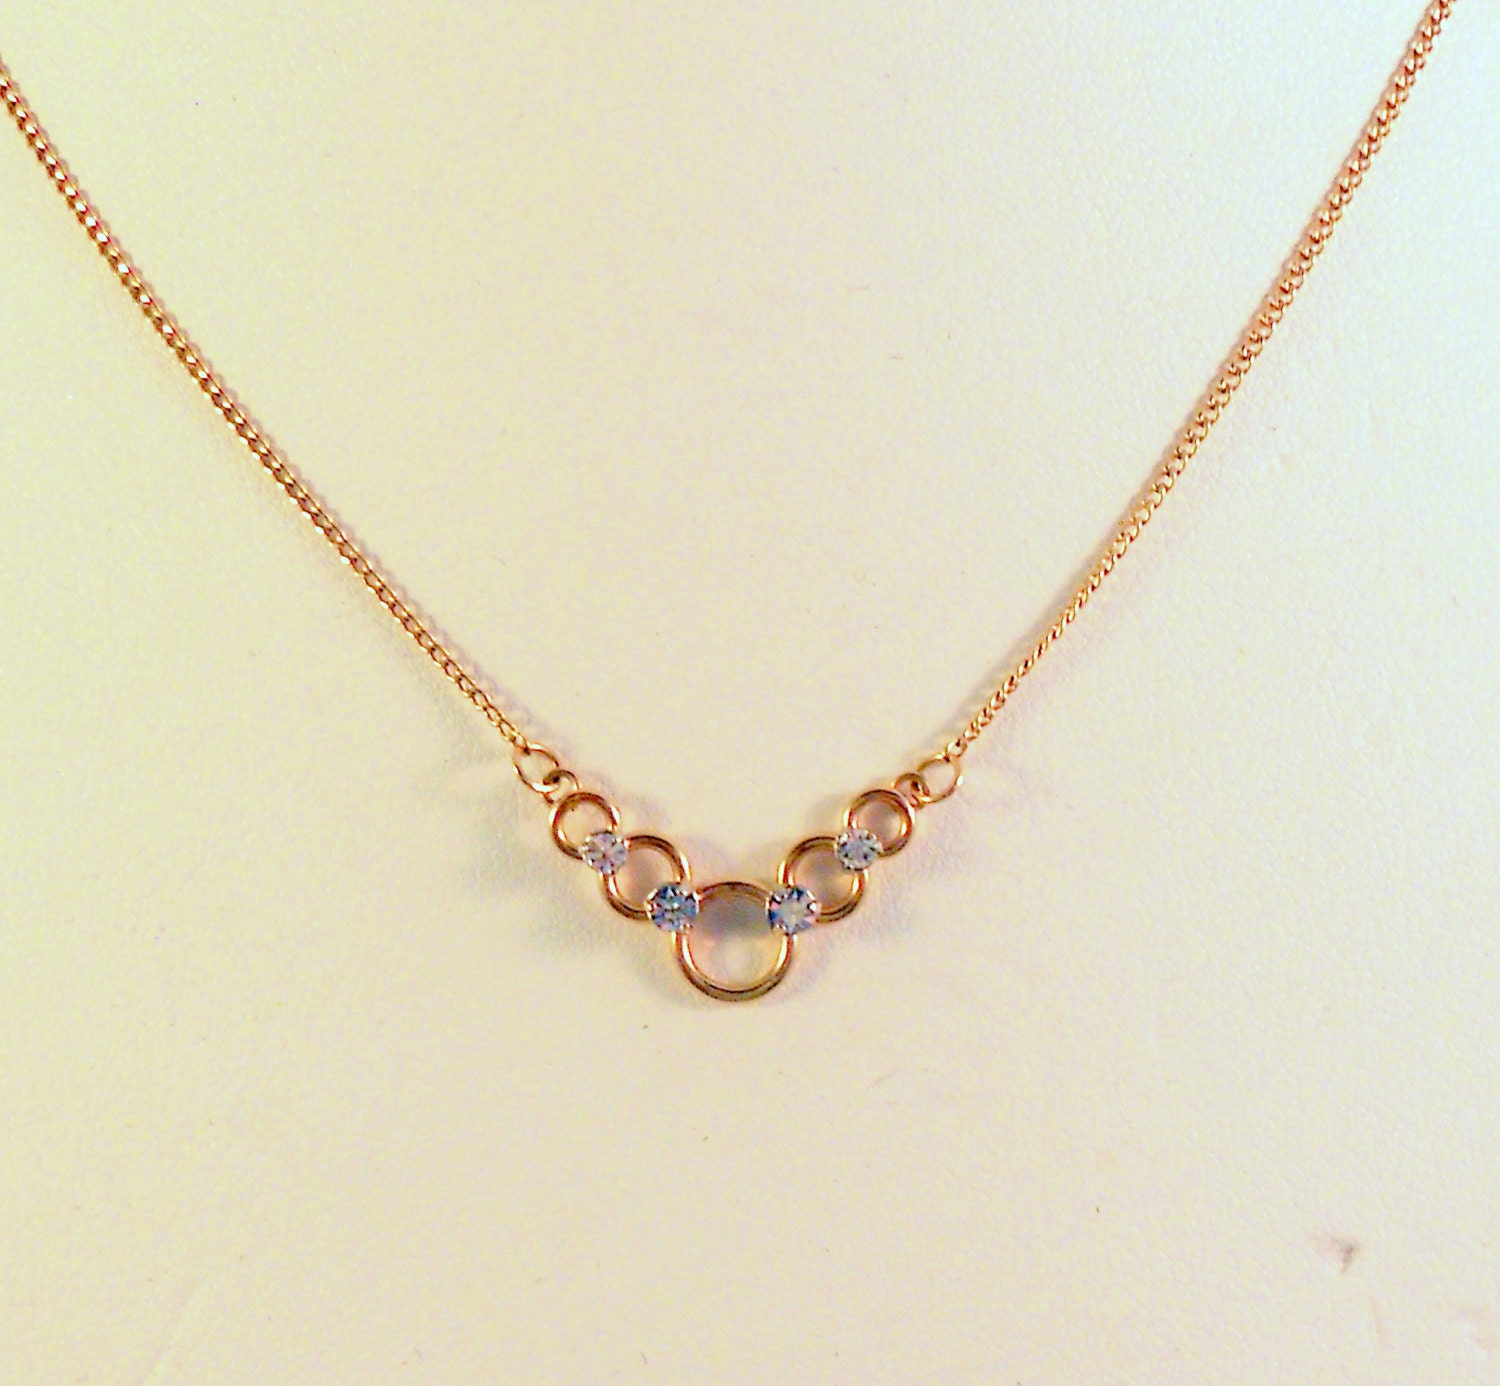 krementz vintage gold tone necklace with graduated rings and